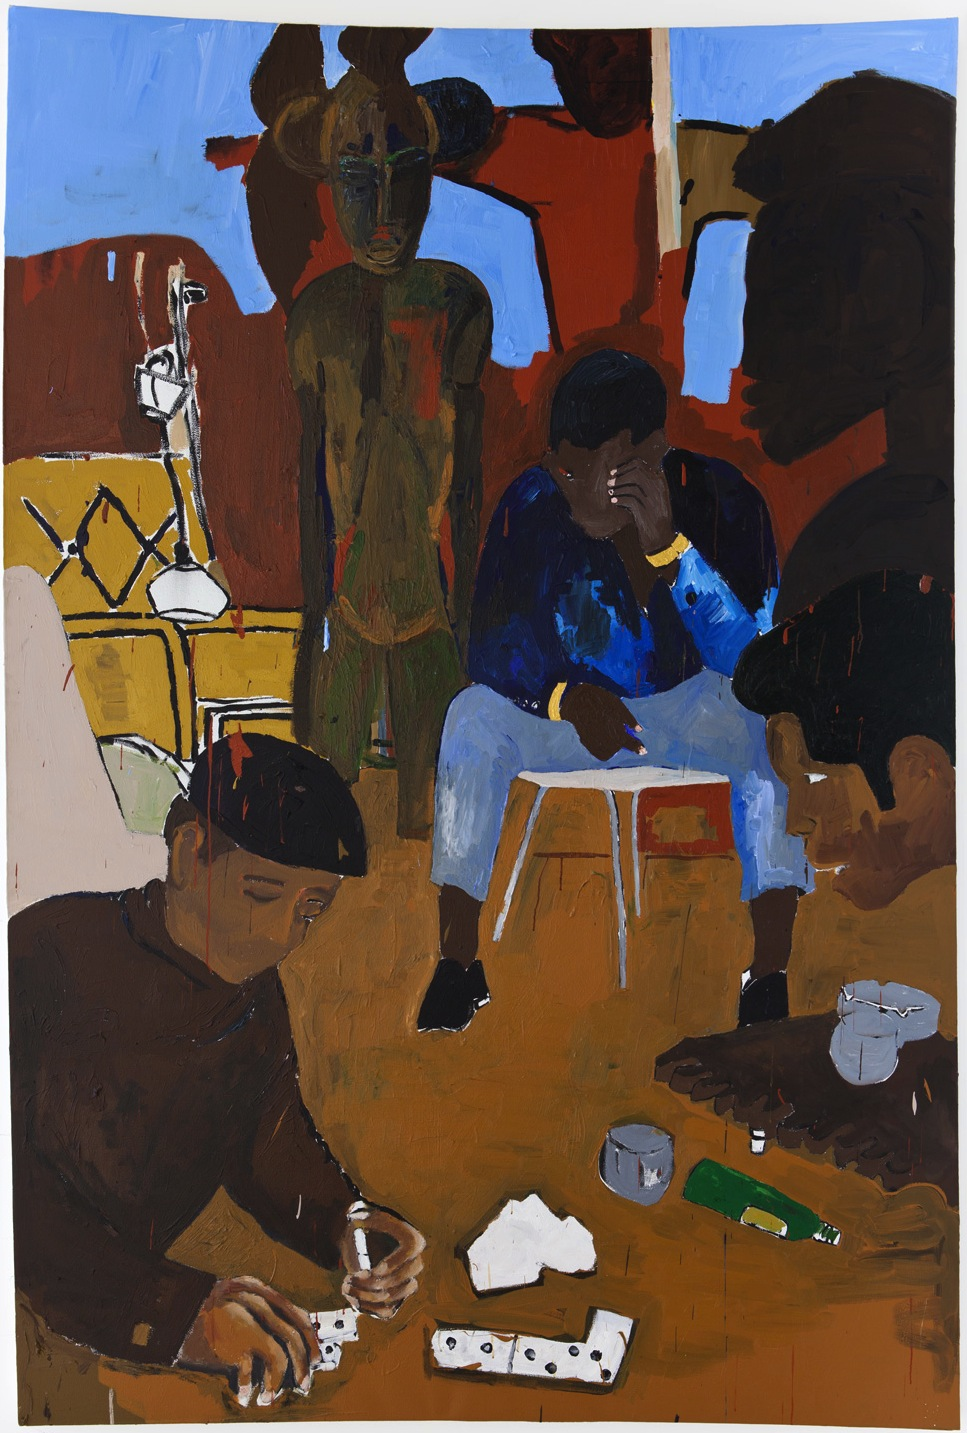 Henry Taylor, Not Alone, 2013, acrylic on canvas, 115 x 76 1/2 x 2 1/2 inches (c